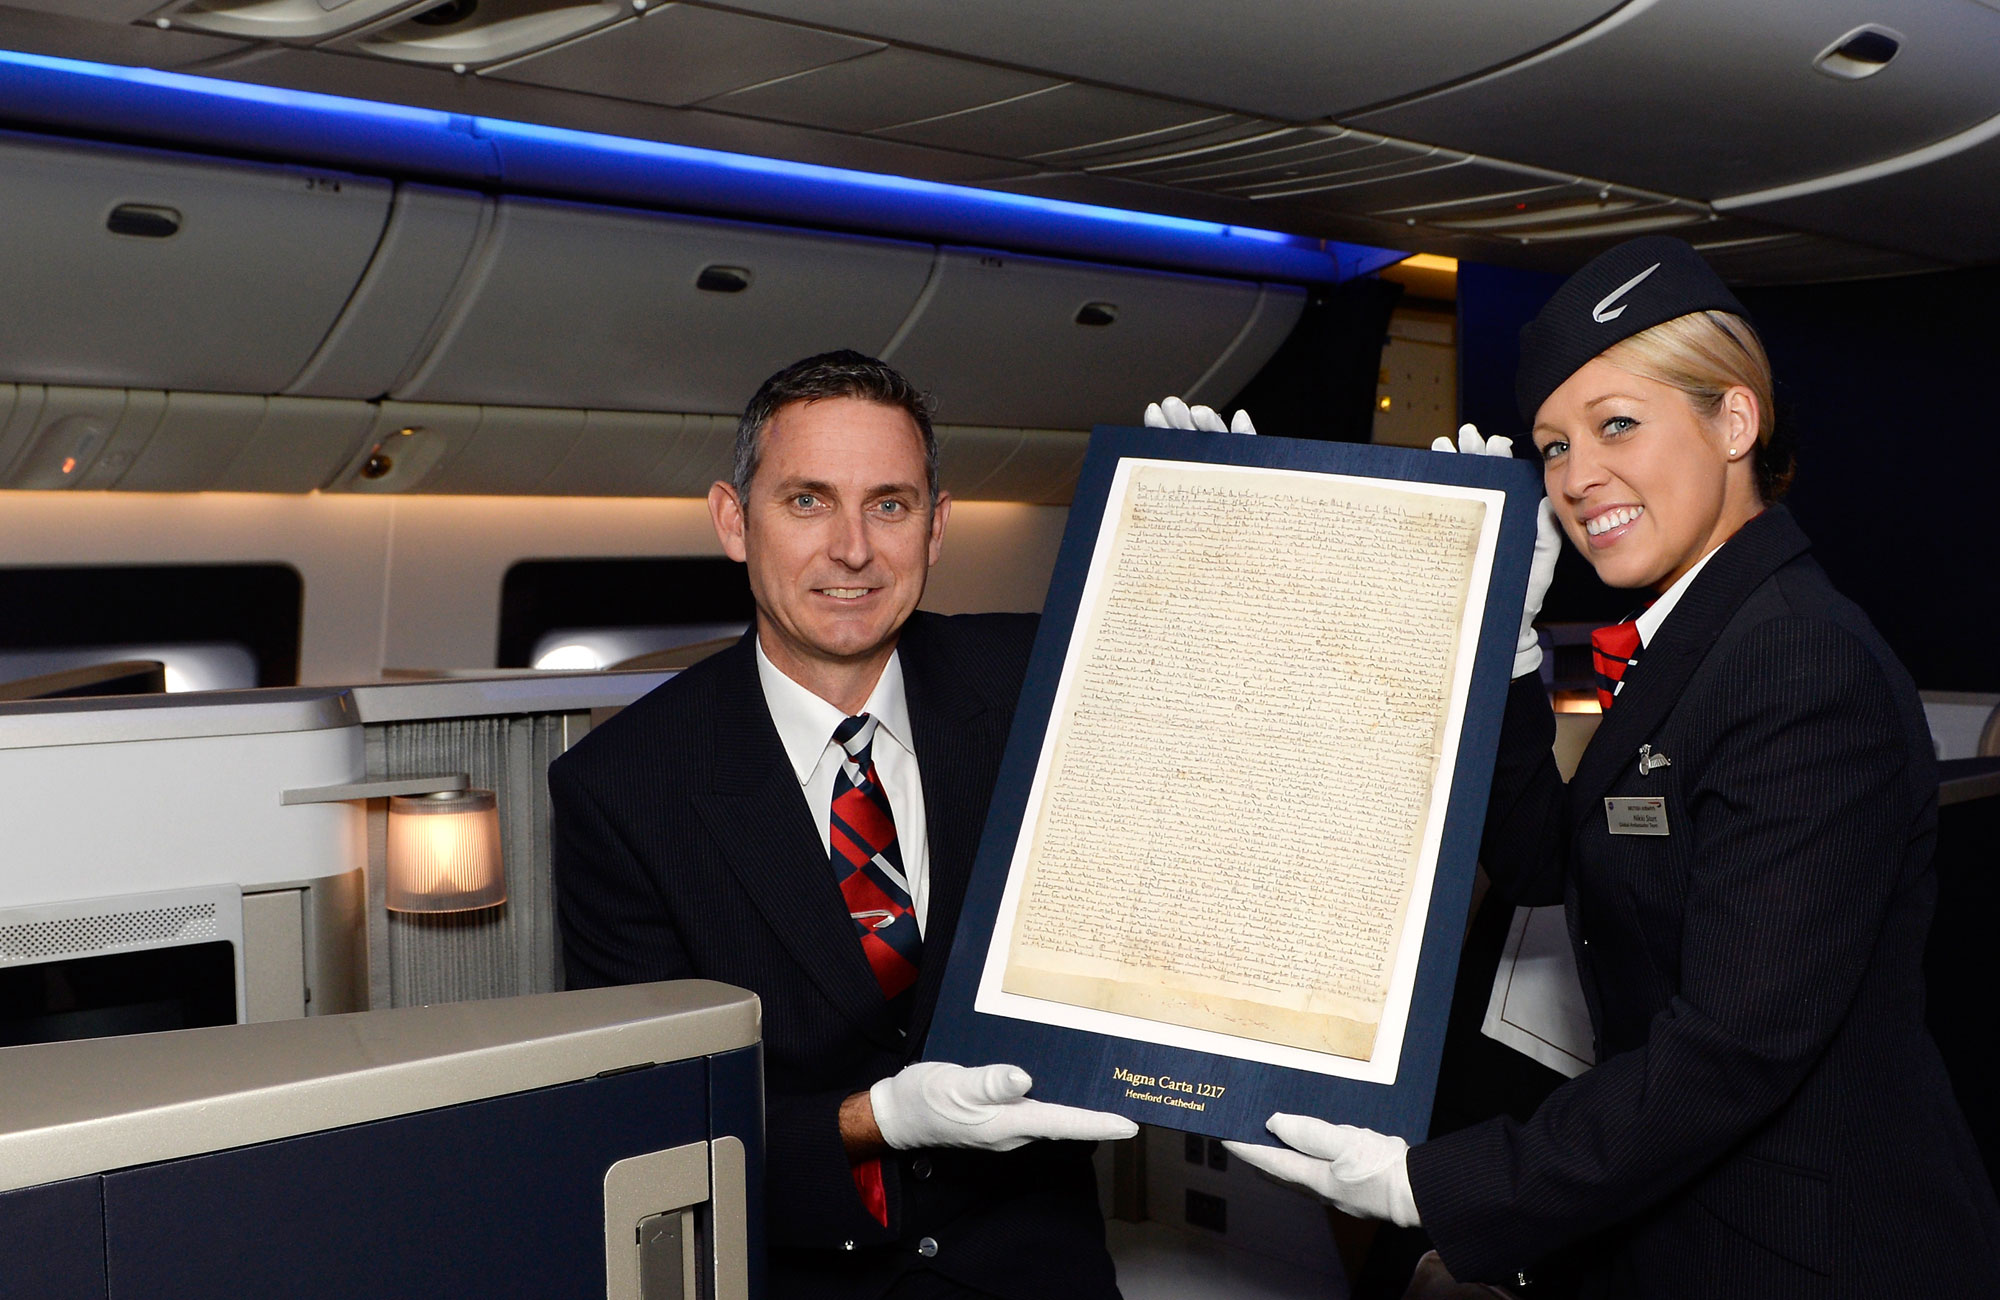 Magna Carta flies First Class with British Airways